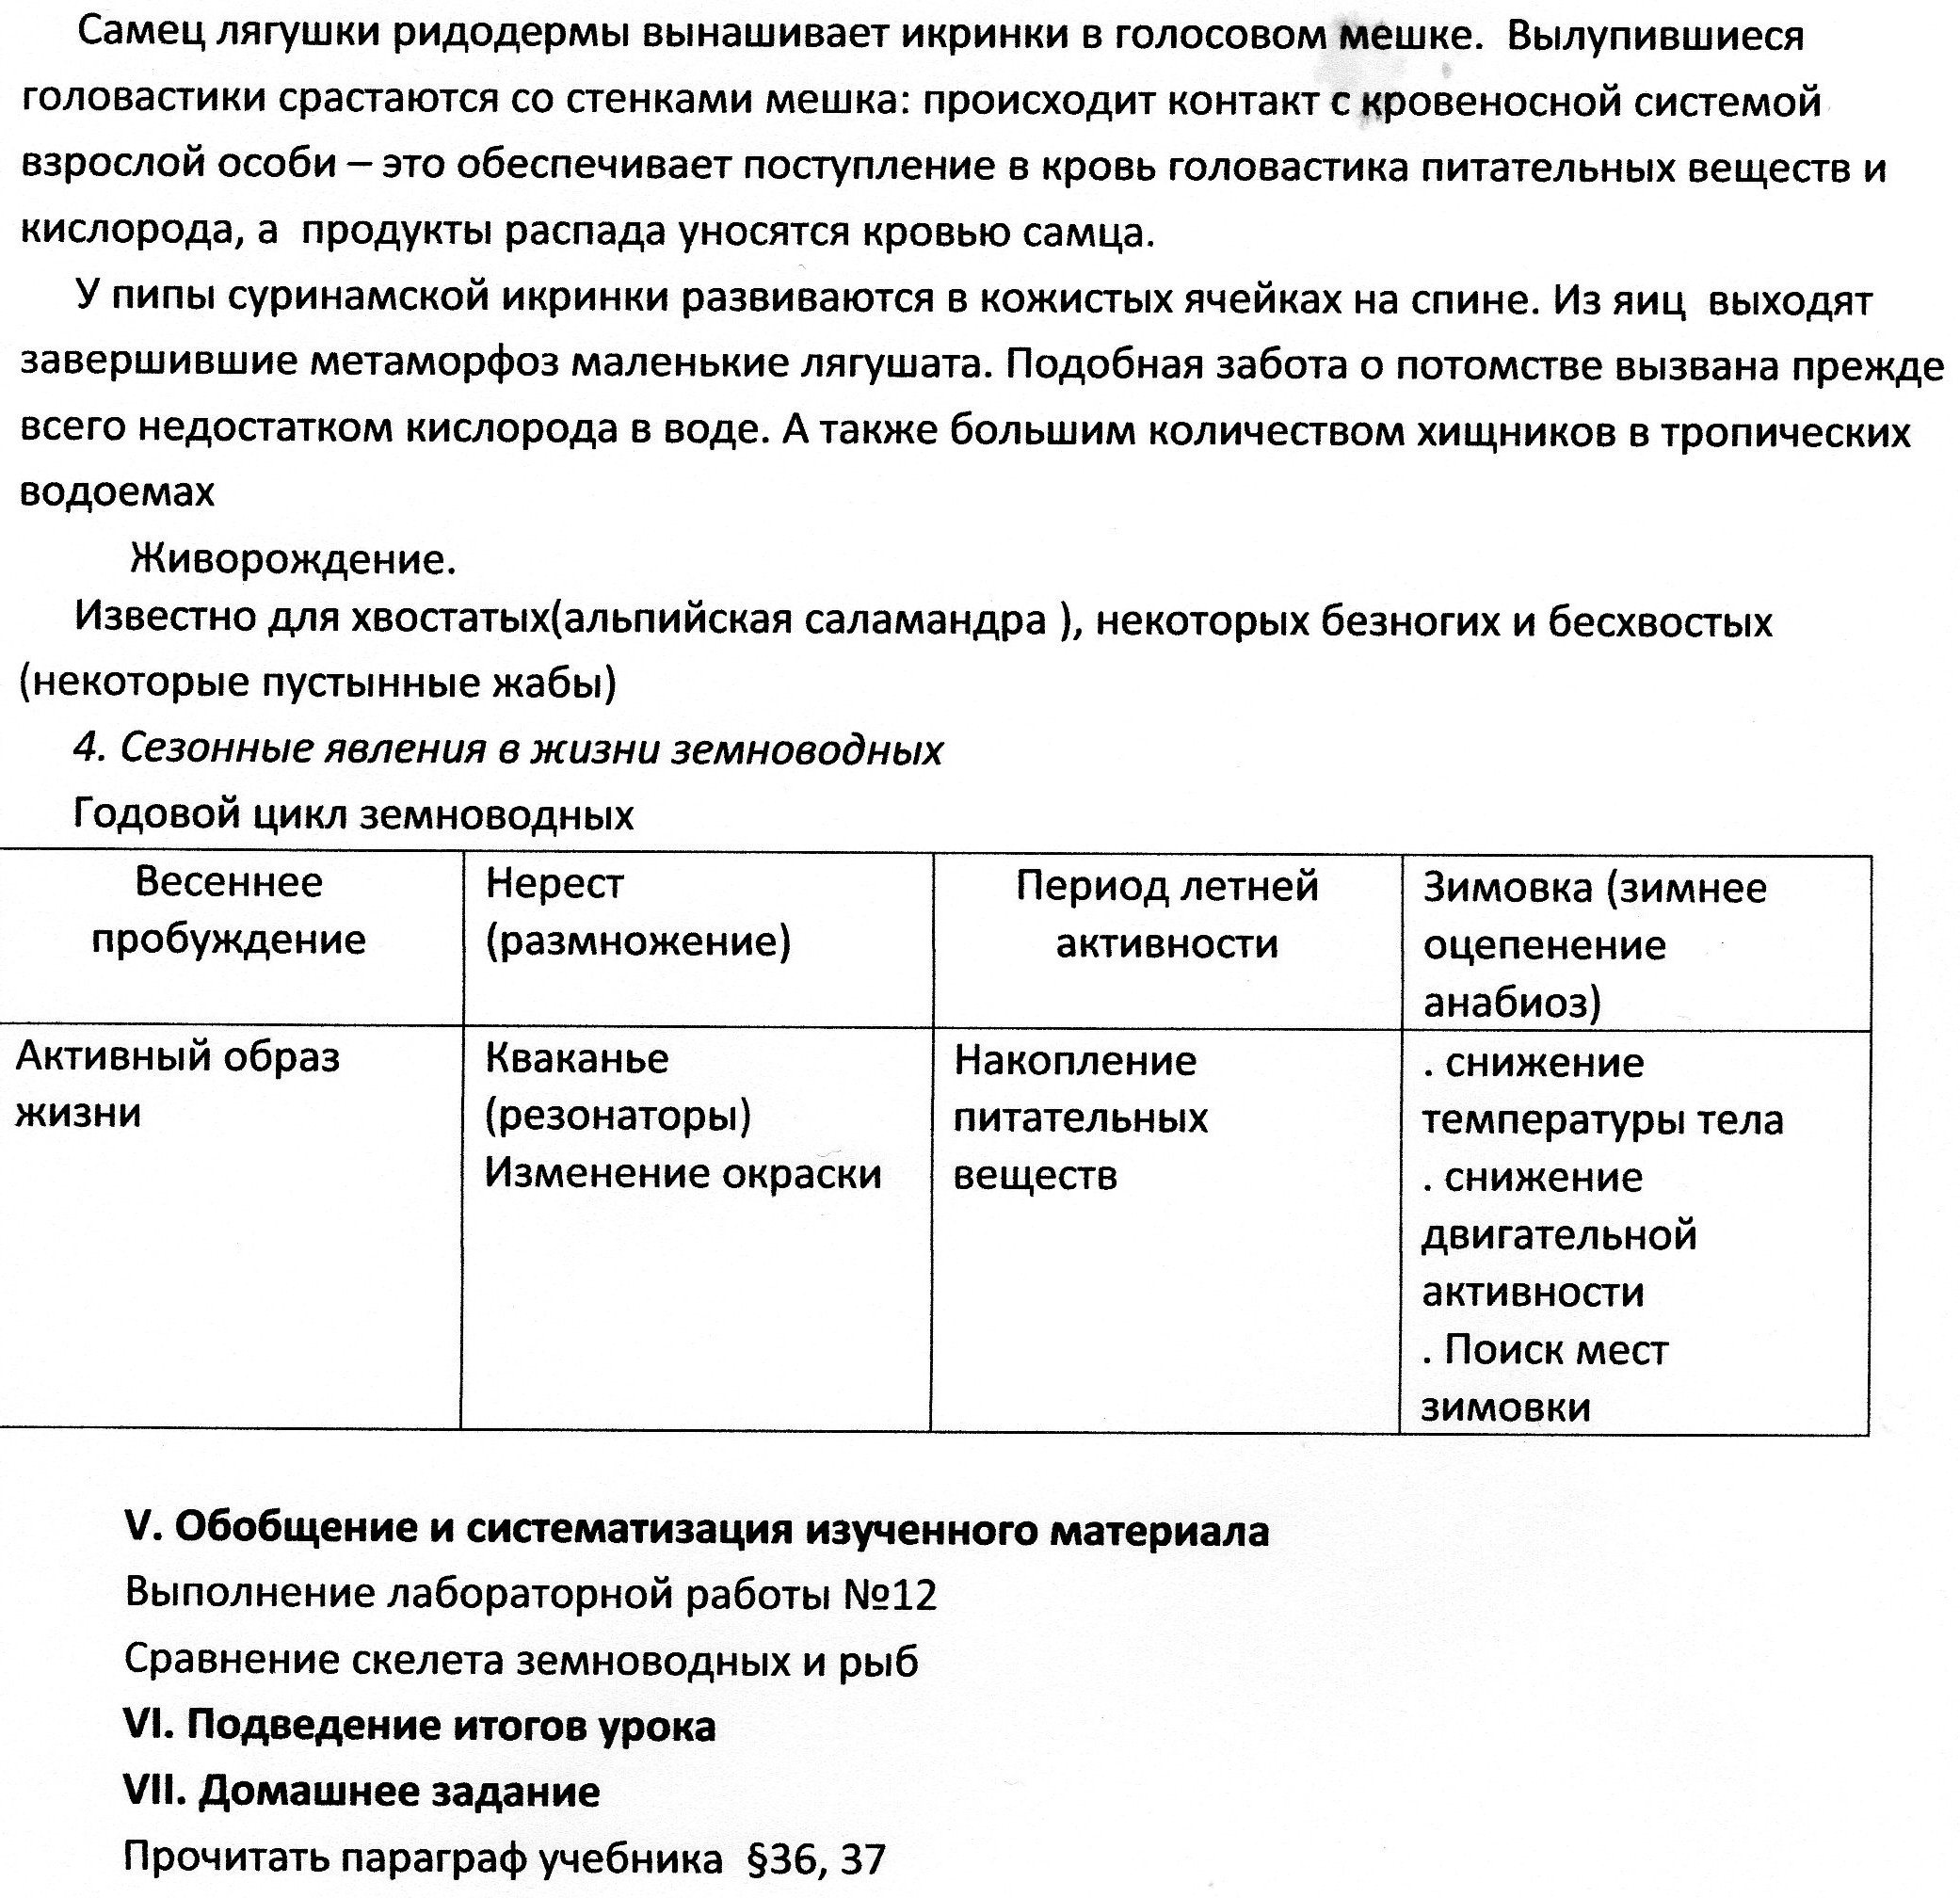 C:\Users\Лена\Pictures\img046.jpg